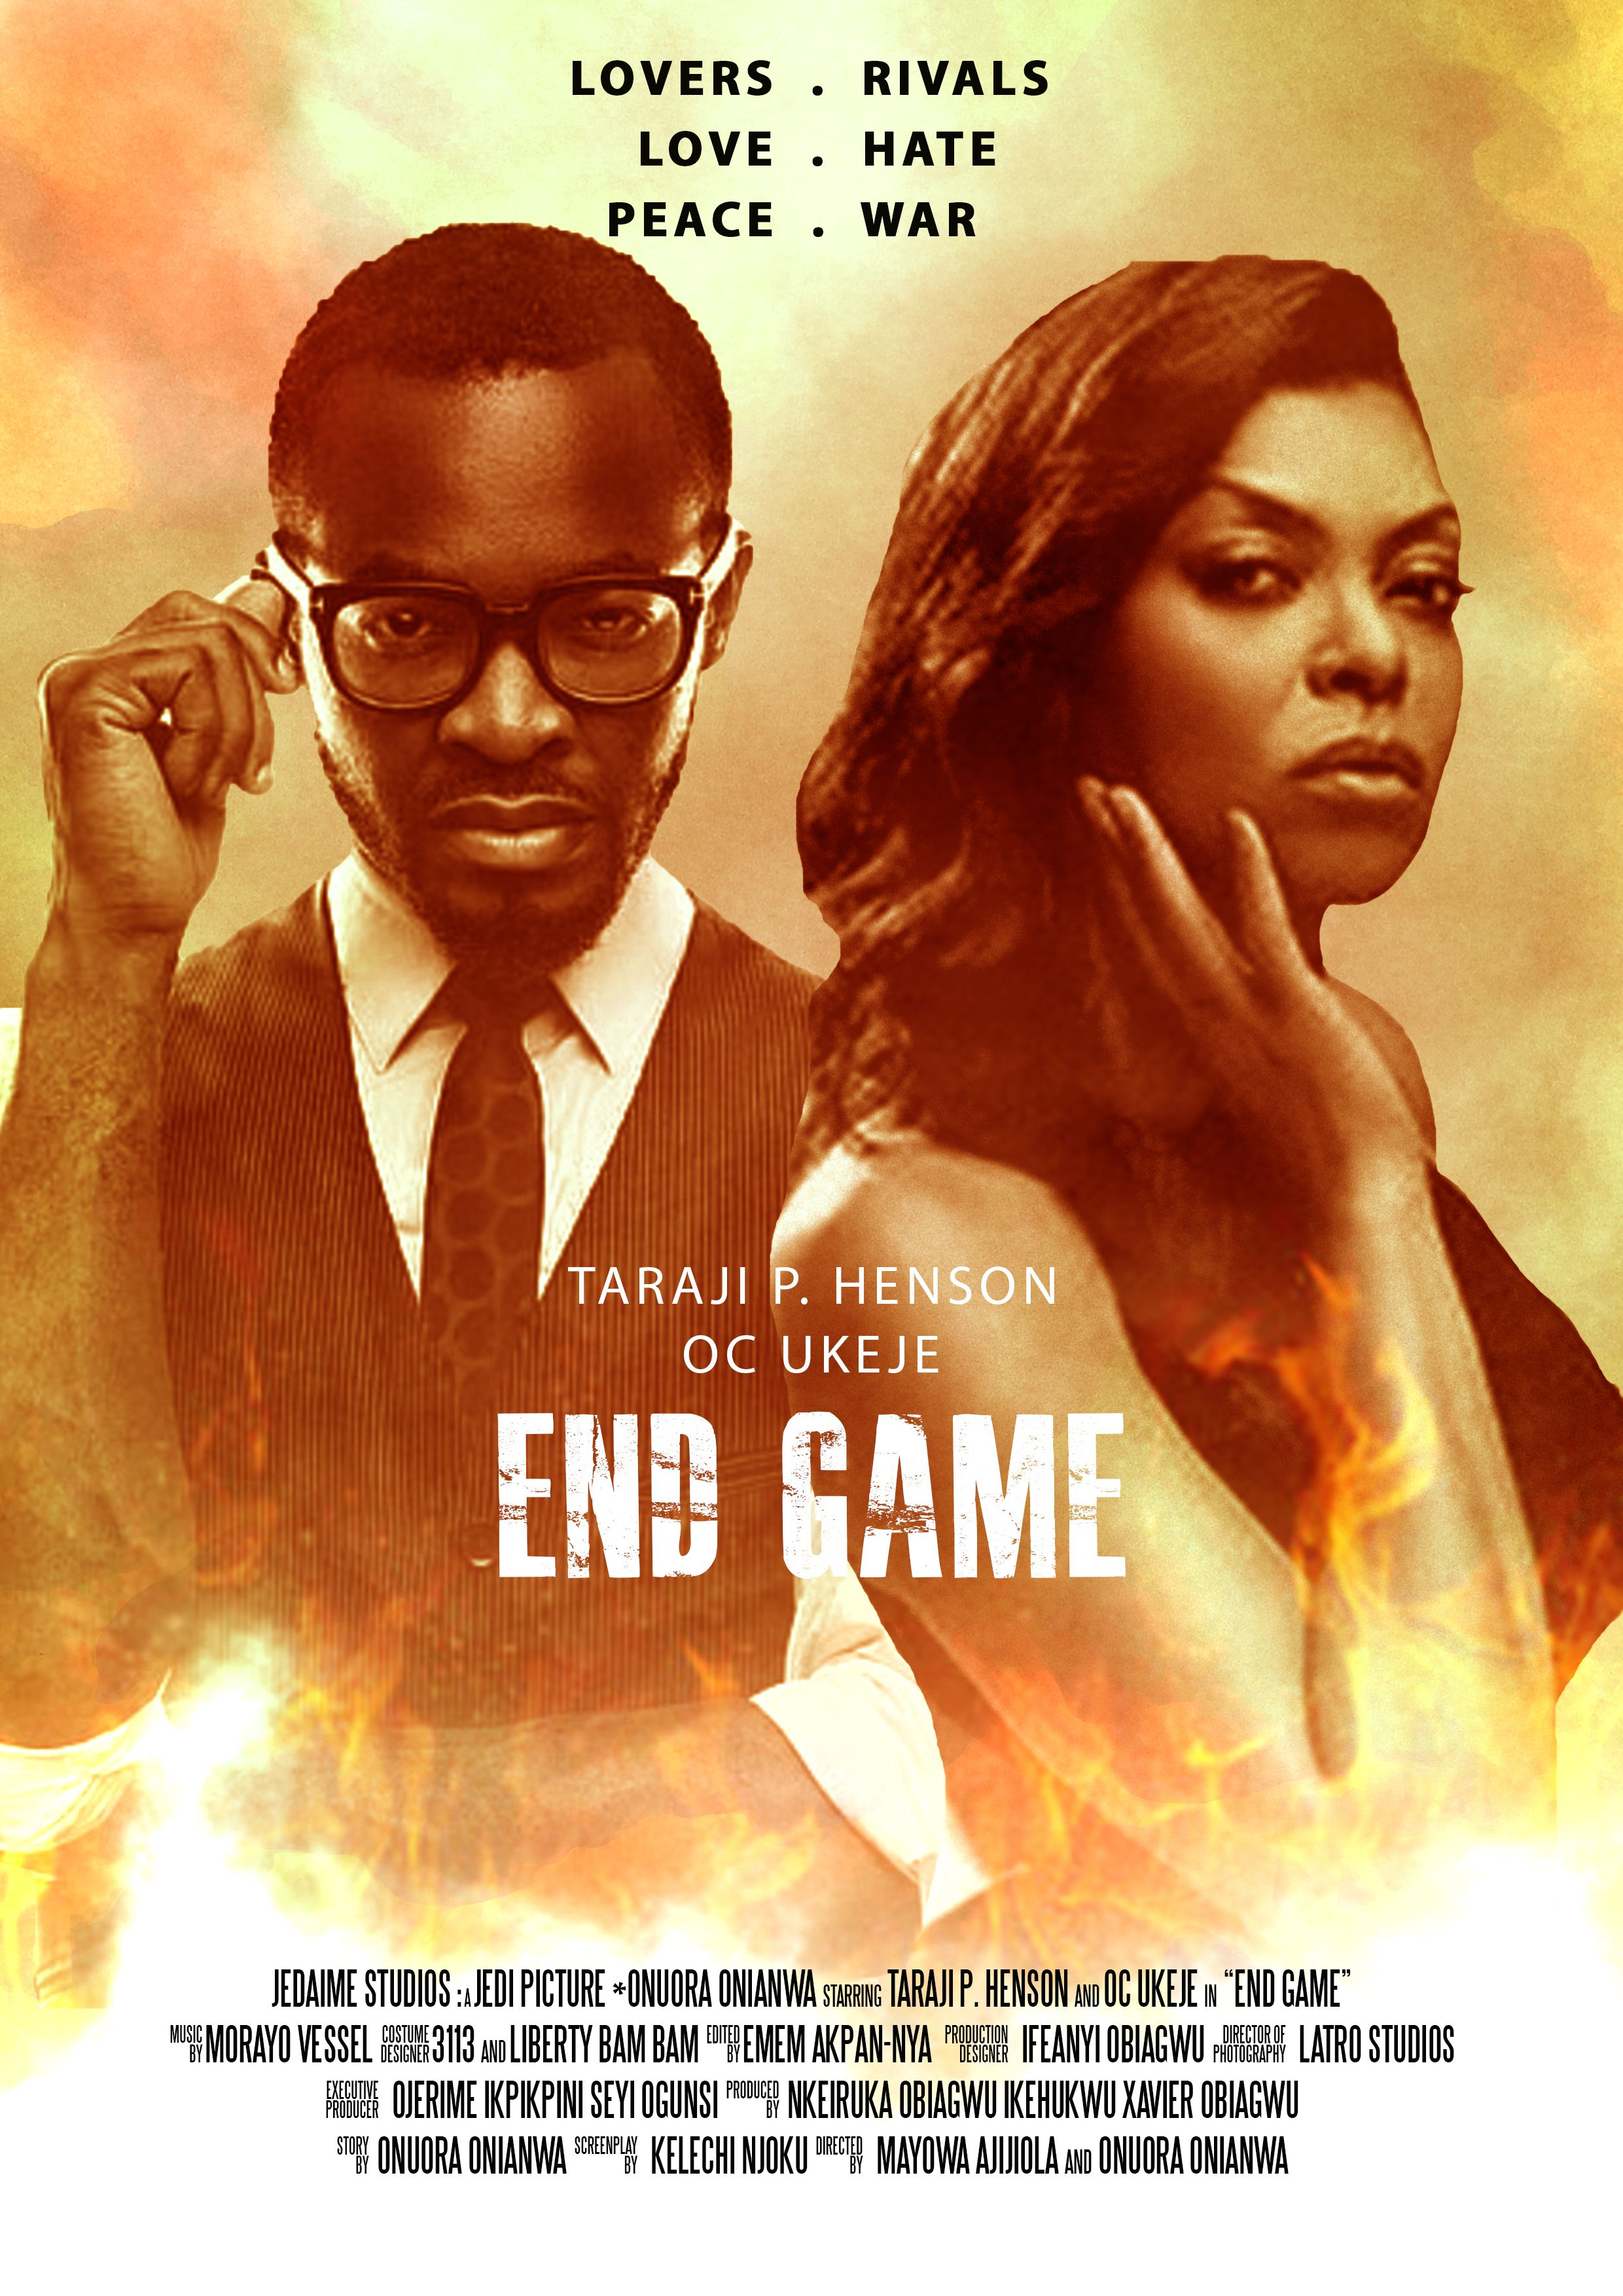 End Game End Game Stars Oc Ukeje And Taraji P Henson Synopsis Two Reporters Have A Secret Steamy Love Affair And All Seems Well Until A Story Comes A